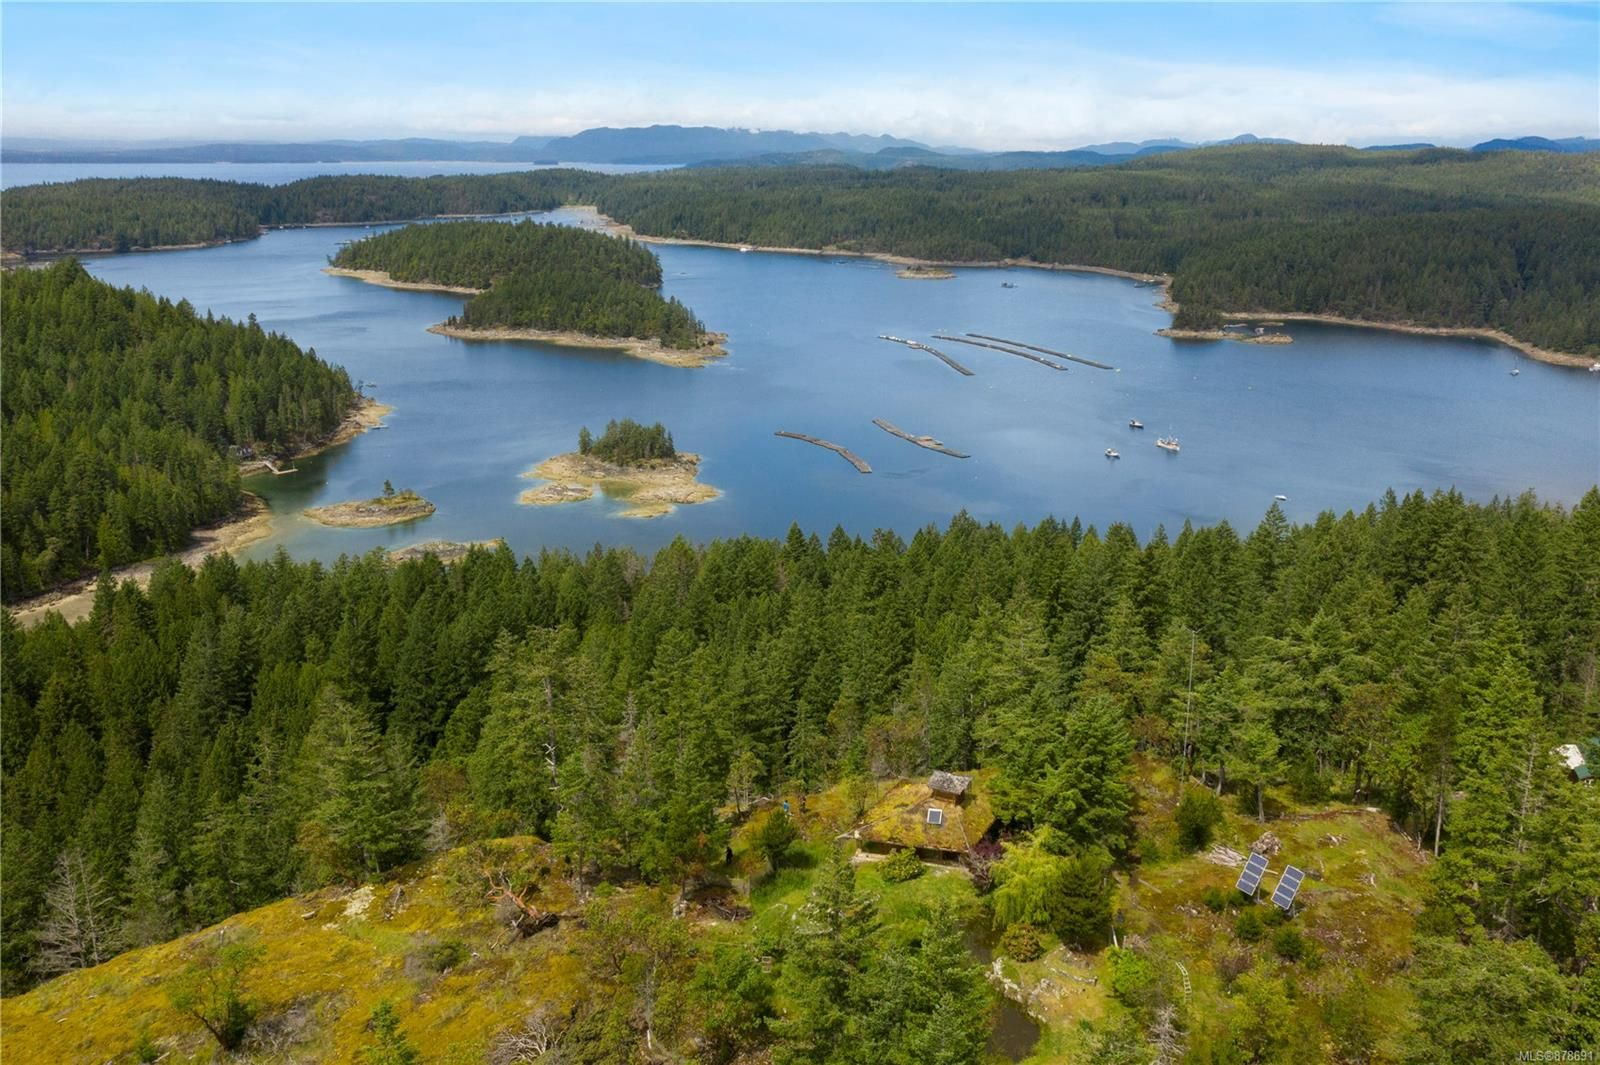 Photo 12: Photos: 979 Thunder Rd in : Isl Cortes Island House for sale (Islands)  : MLS®# 878691